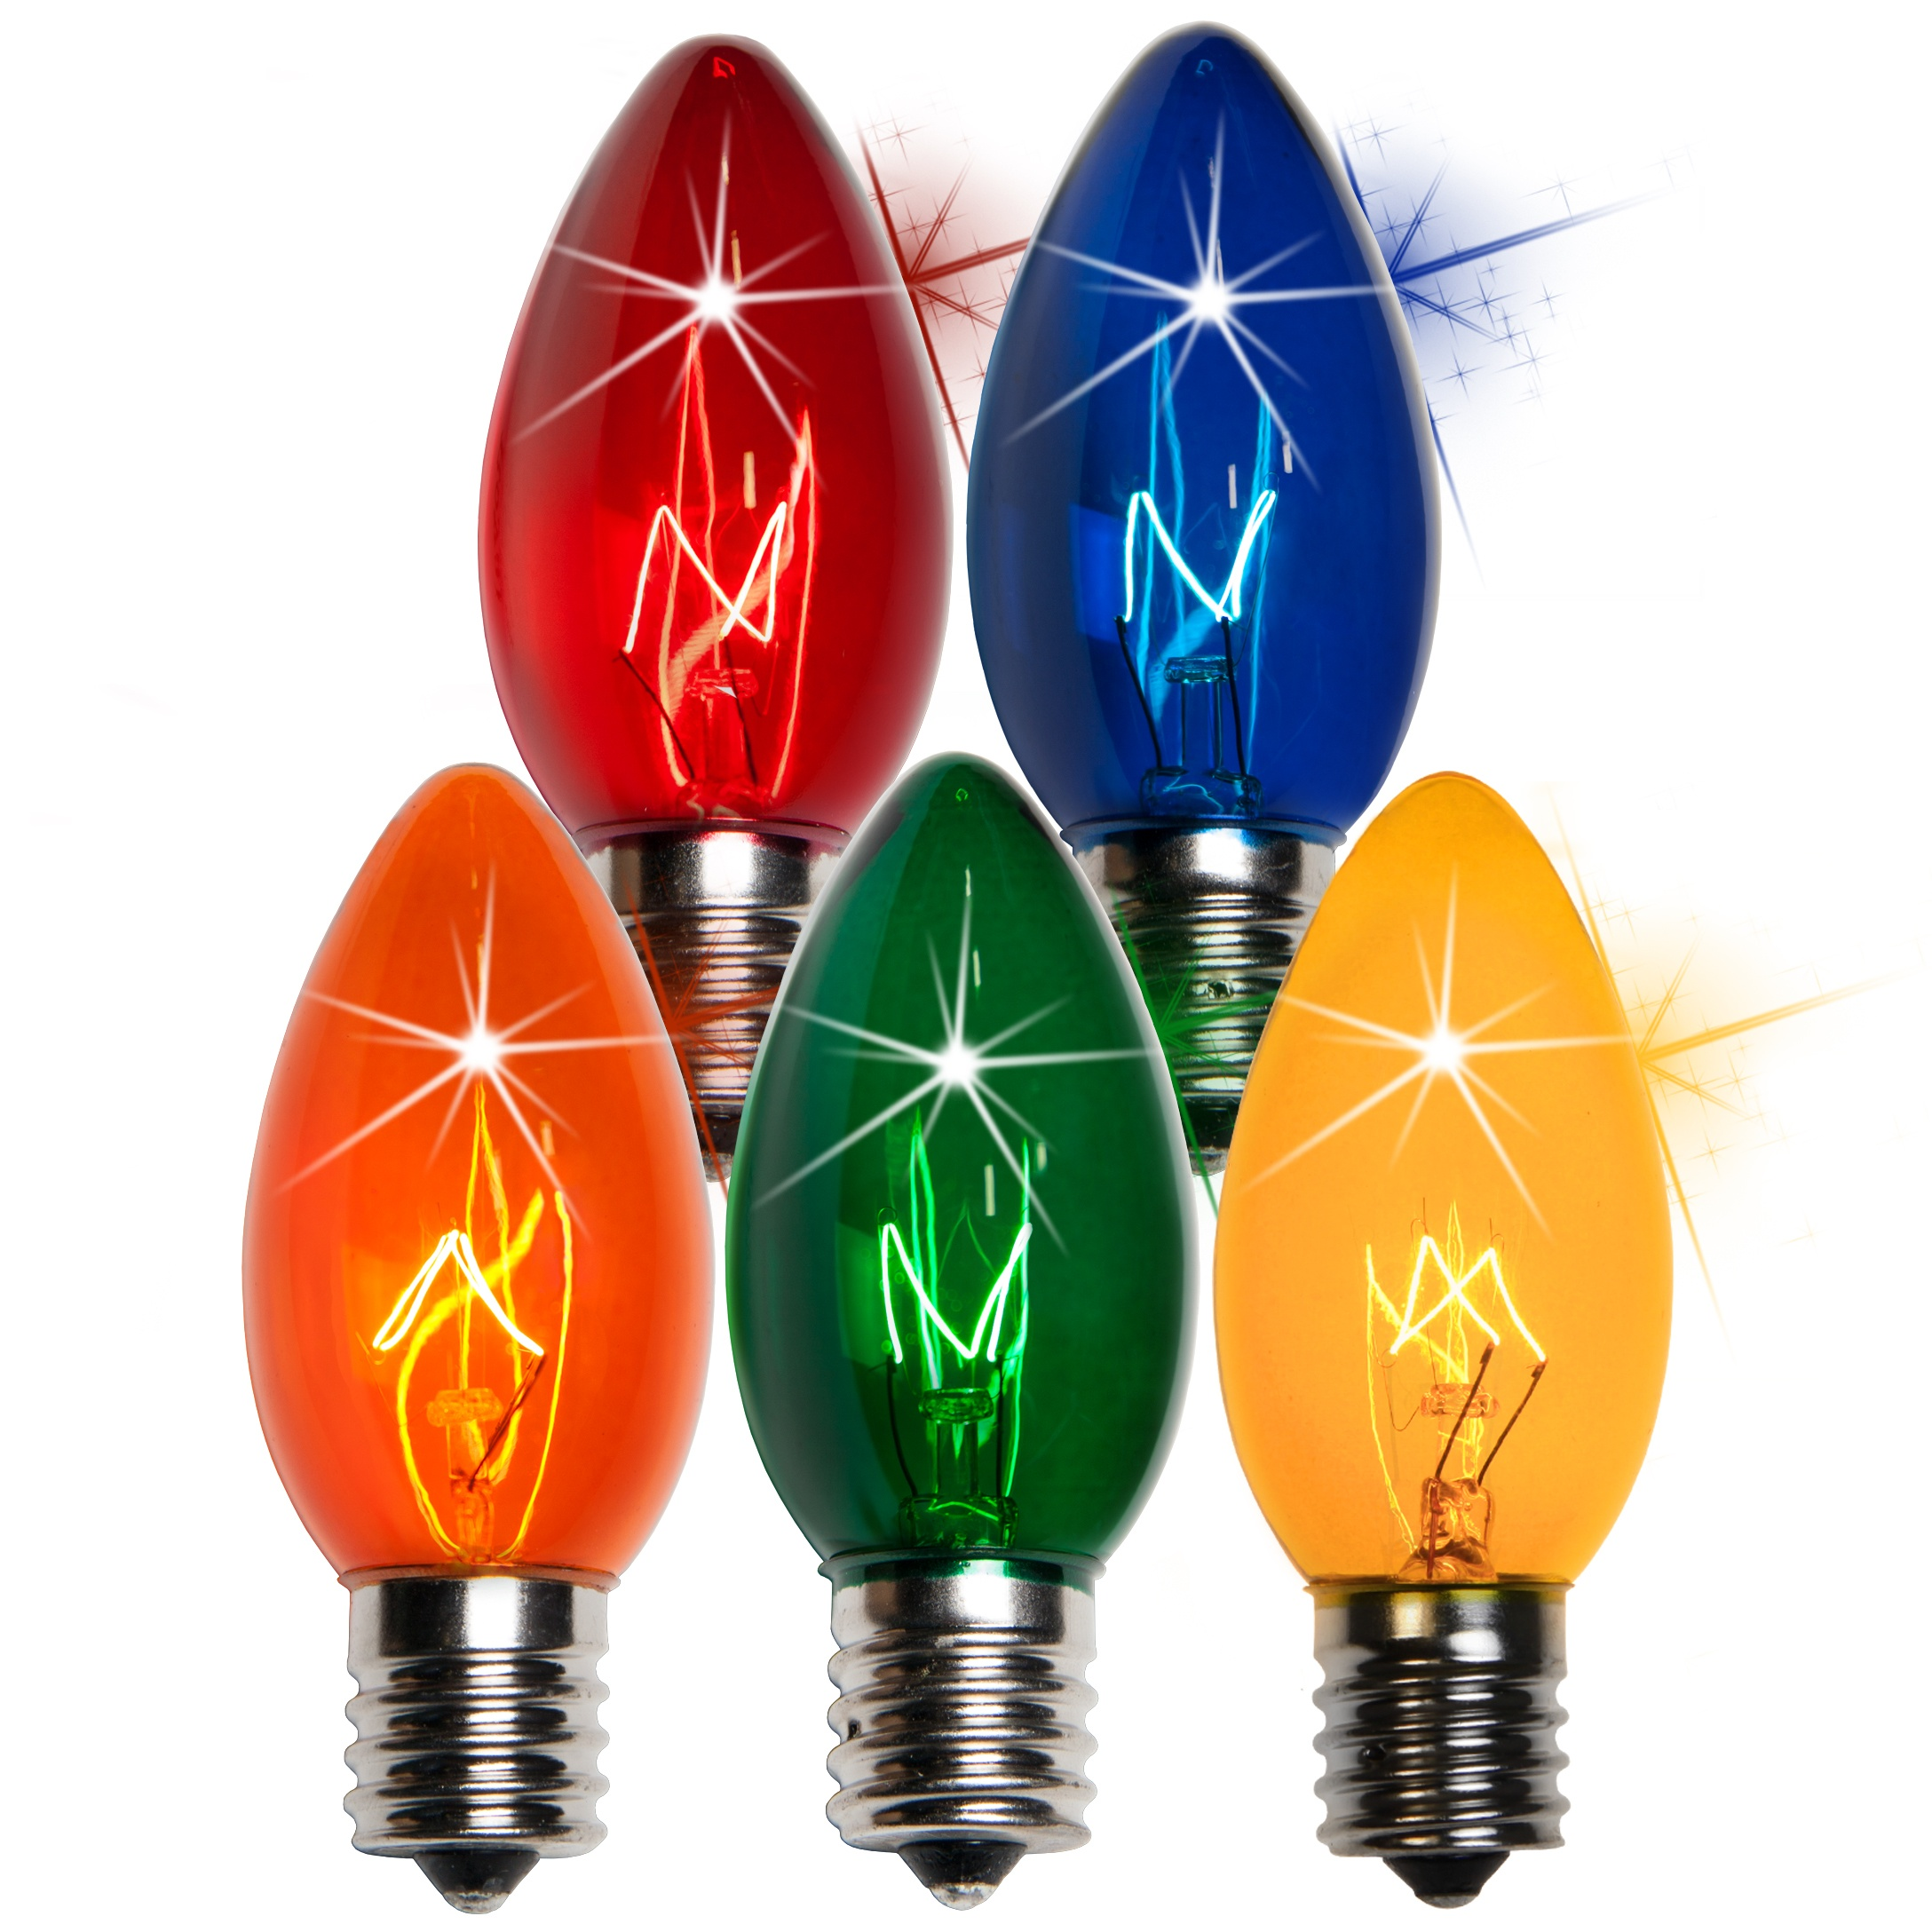 C9 Christmas Light Bulb C9 Twinkle Multicolor Christmas